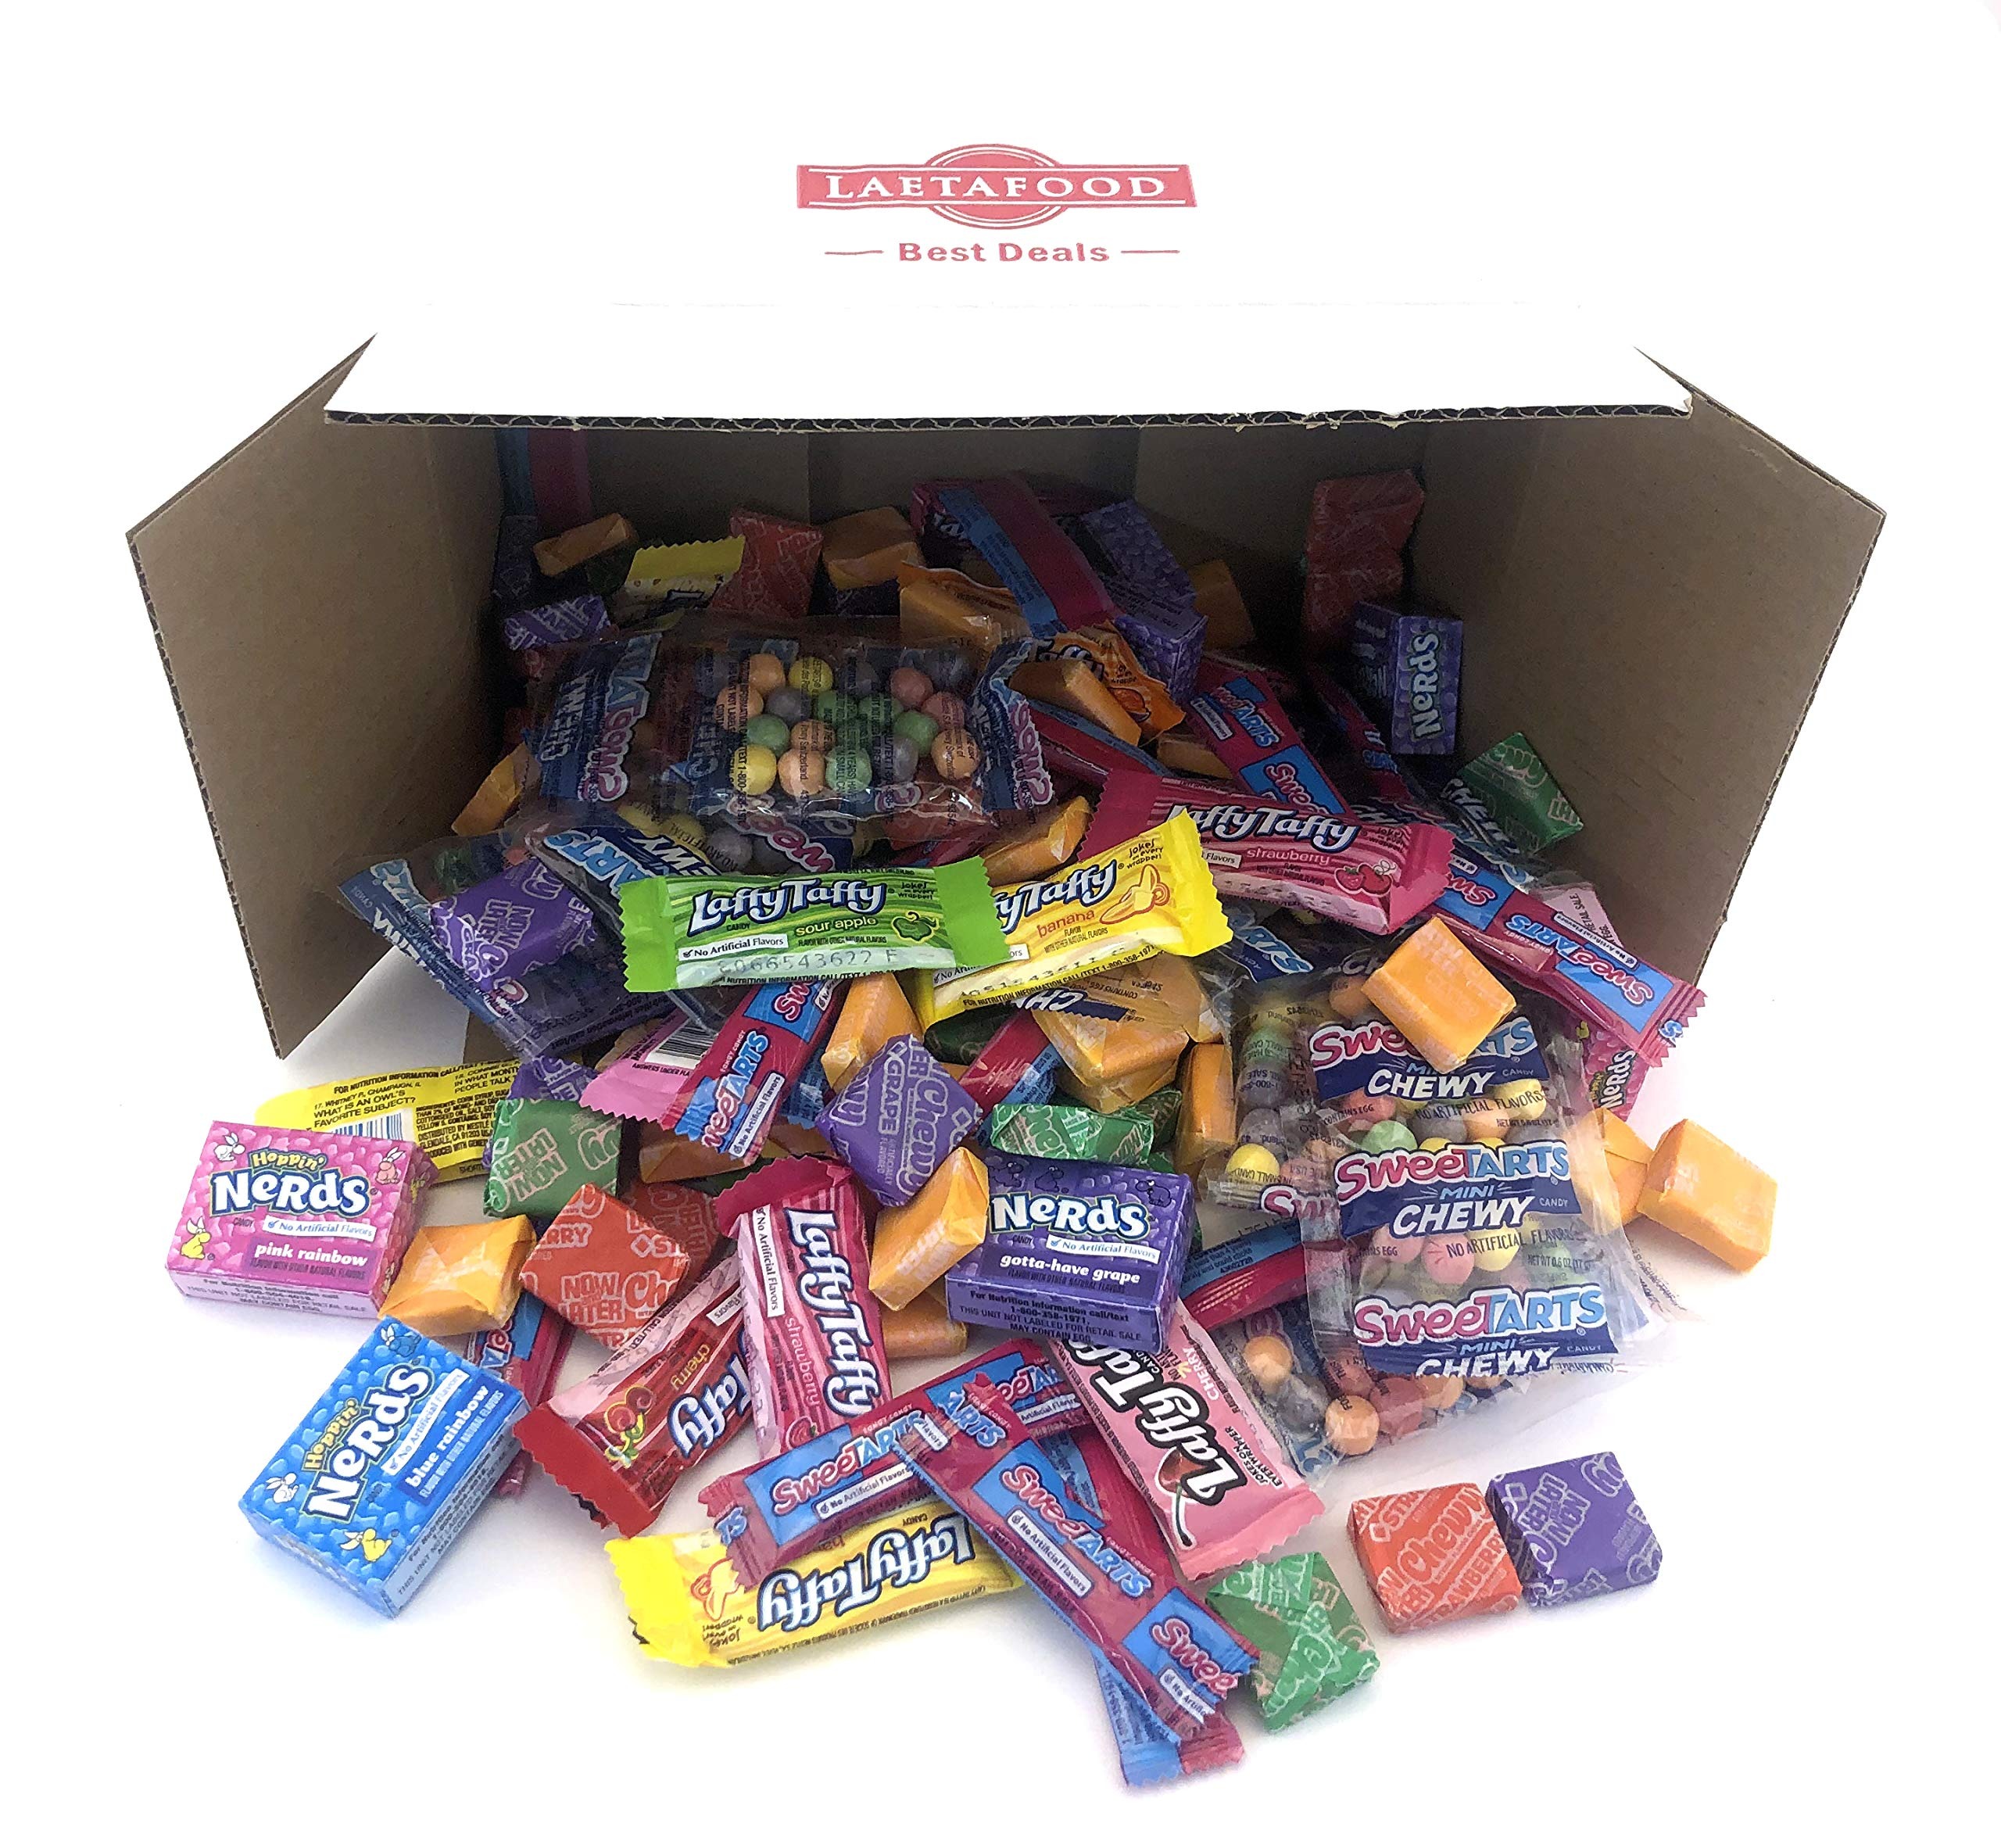 Halloween Candy Treats Assortment - Wonka Laffy Taffy Assorted Flavors, Nerds Mini Boxes, Now and Later Chewy Candy, SweeTarts Mini Pouch and Fun Size (10 Pounds Bulk Pack) by LAETAFOOD